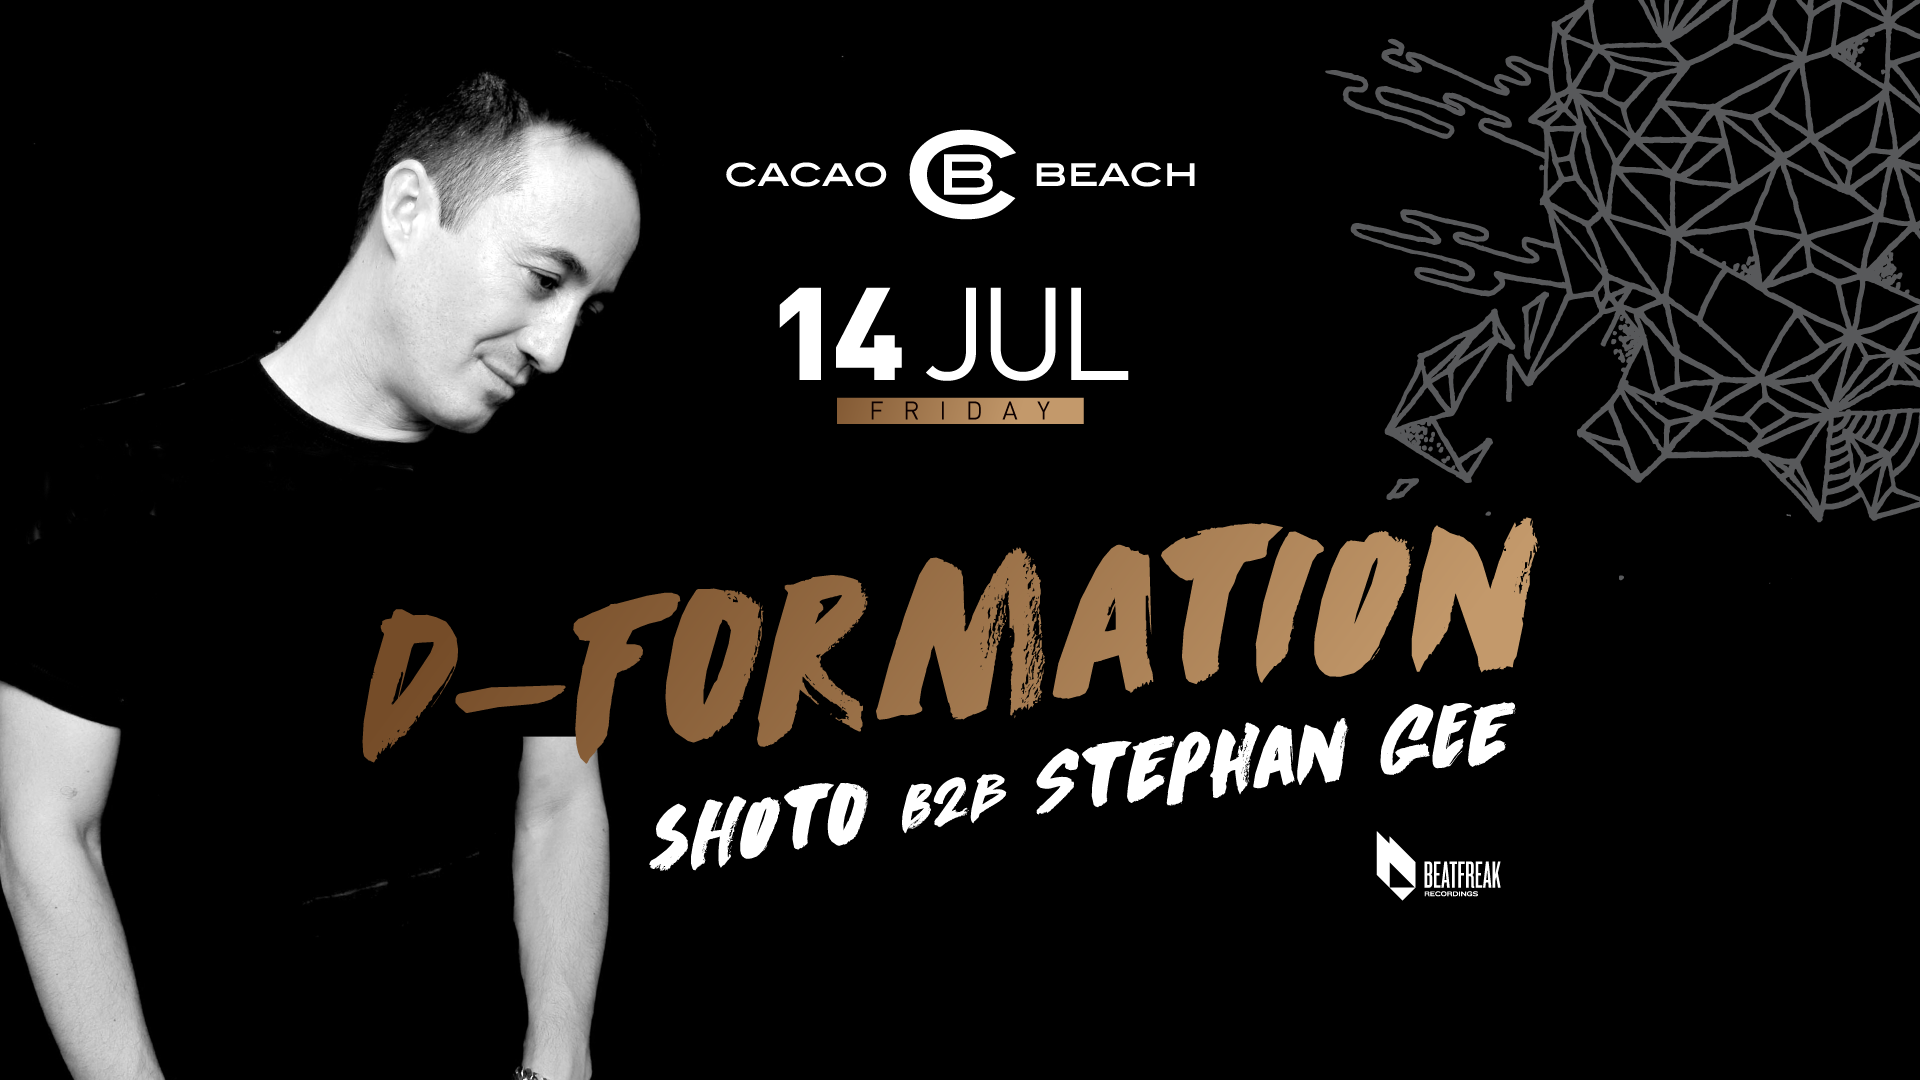 D-Formation and Carlo Ruetz in Cacao Beach